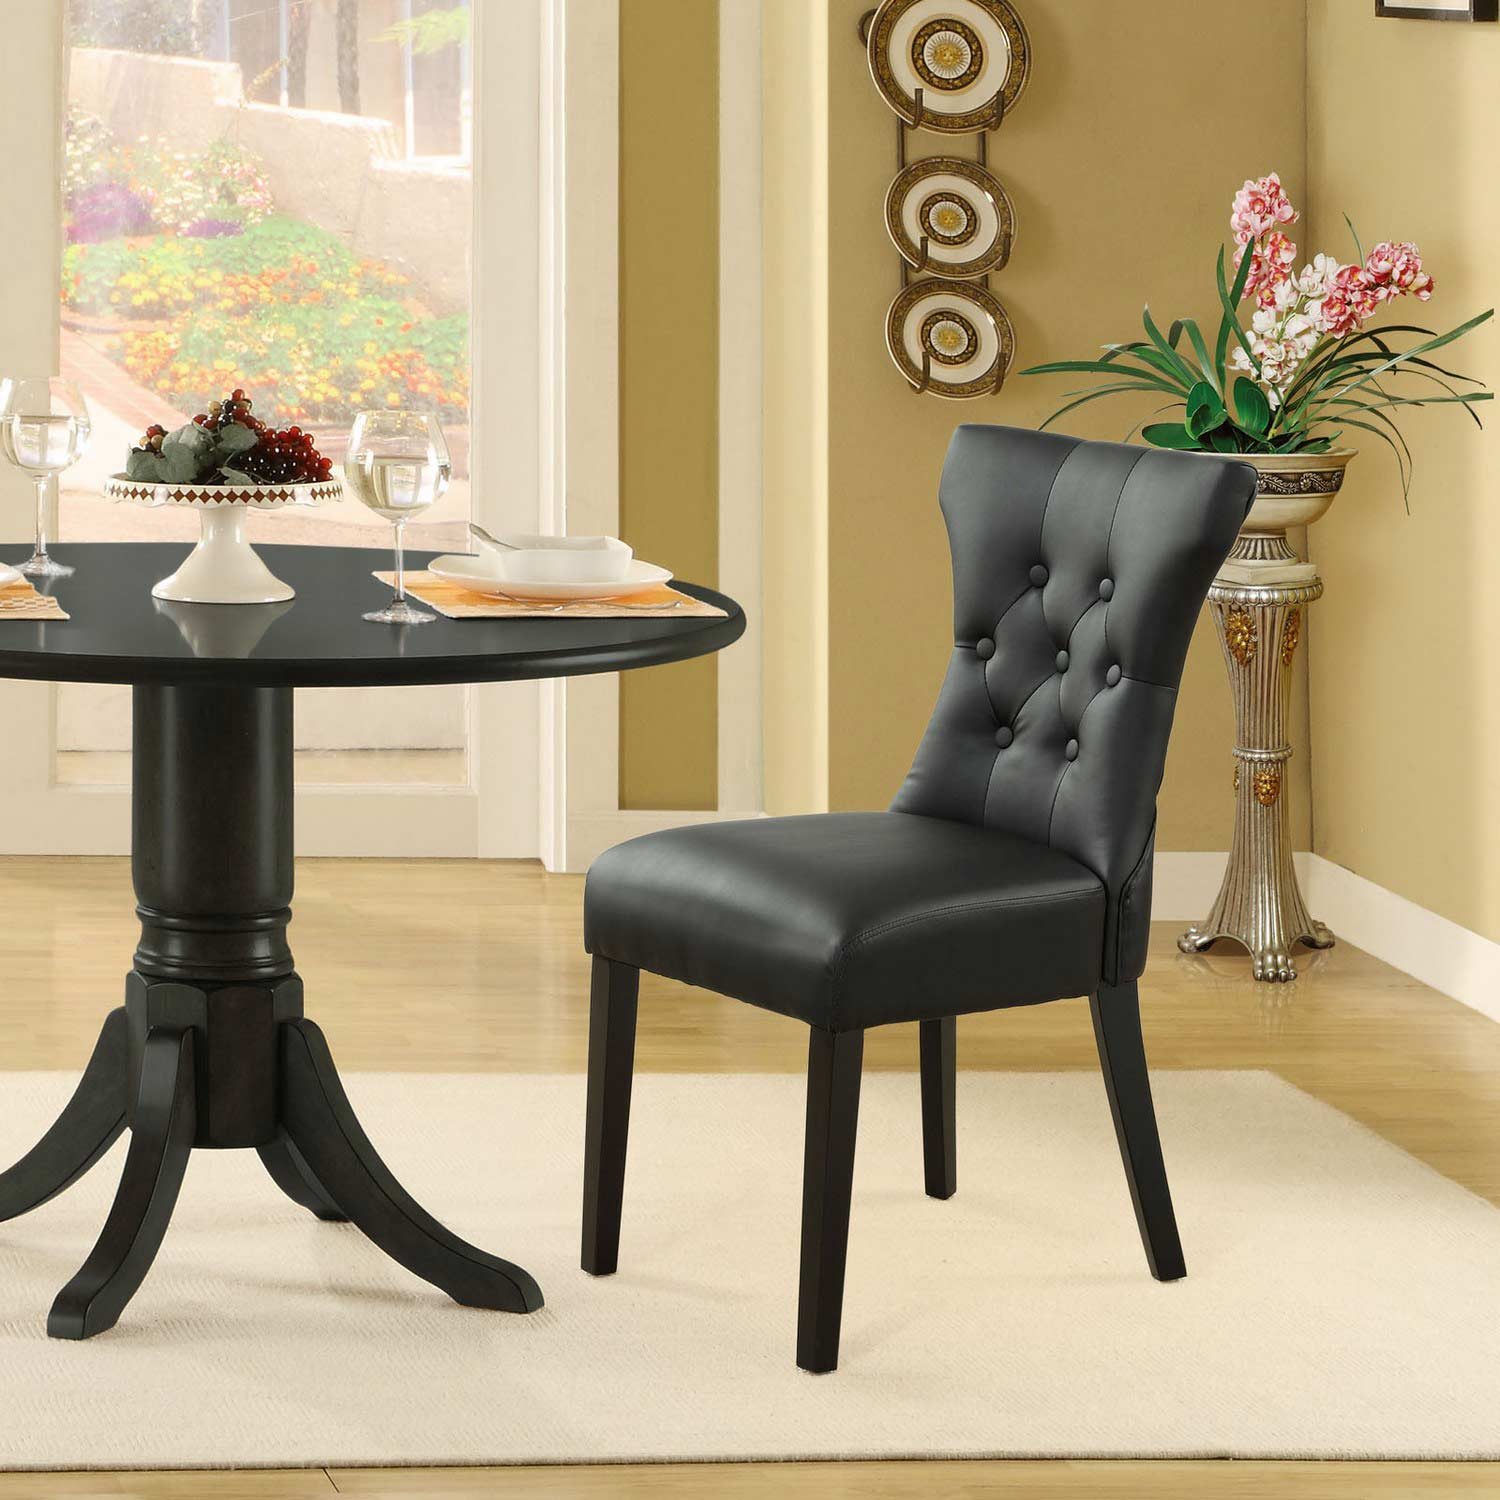 Modway Silhouette Dining Chairs Set of 2 - Black